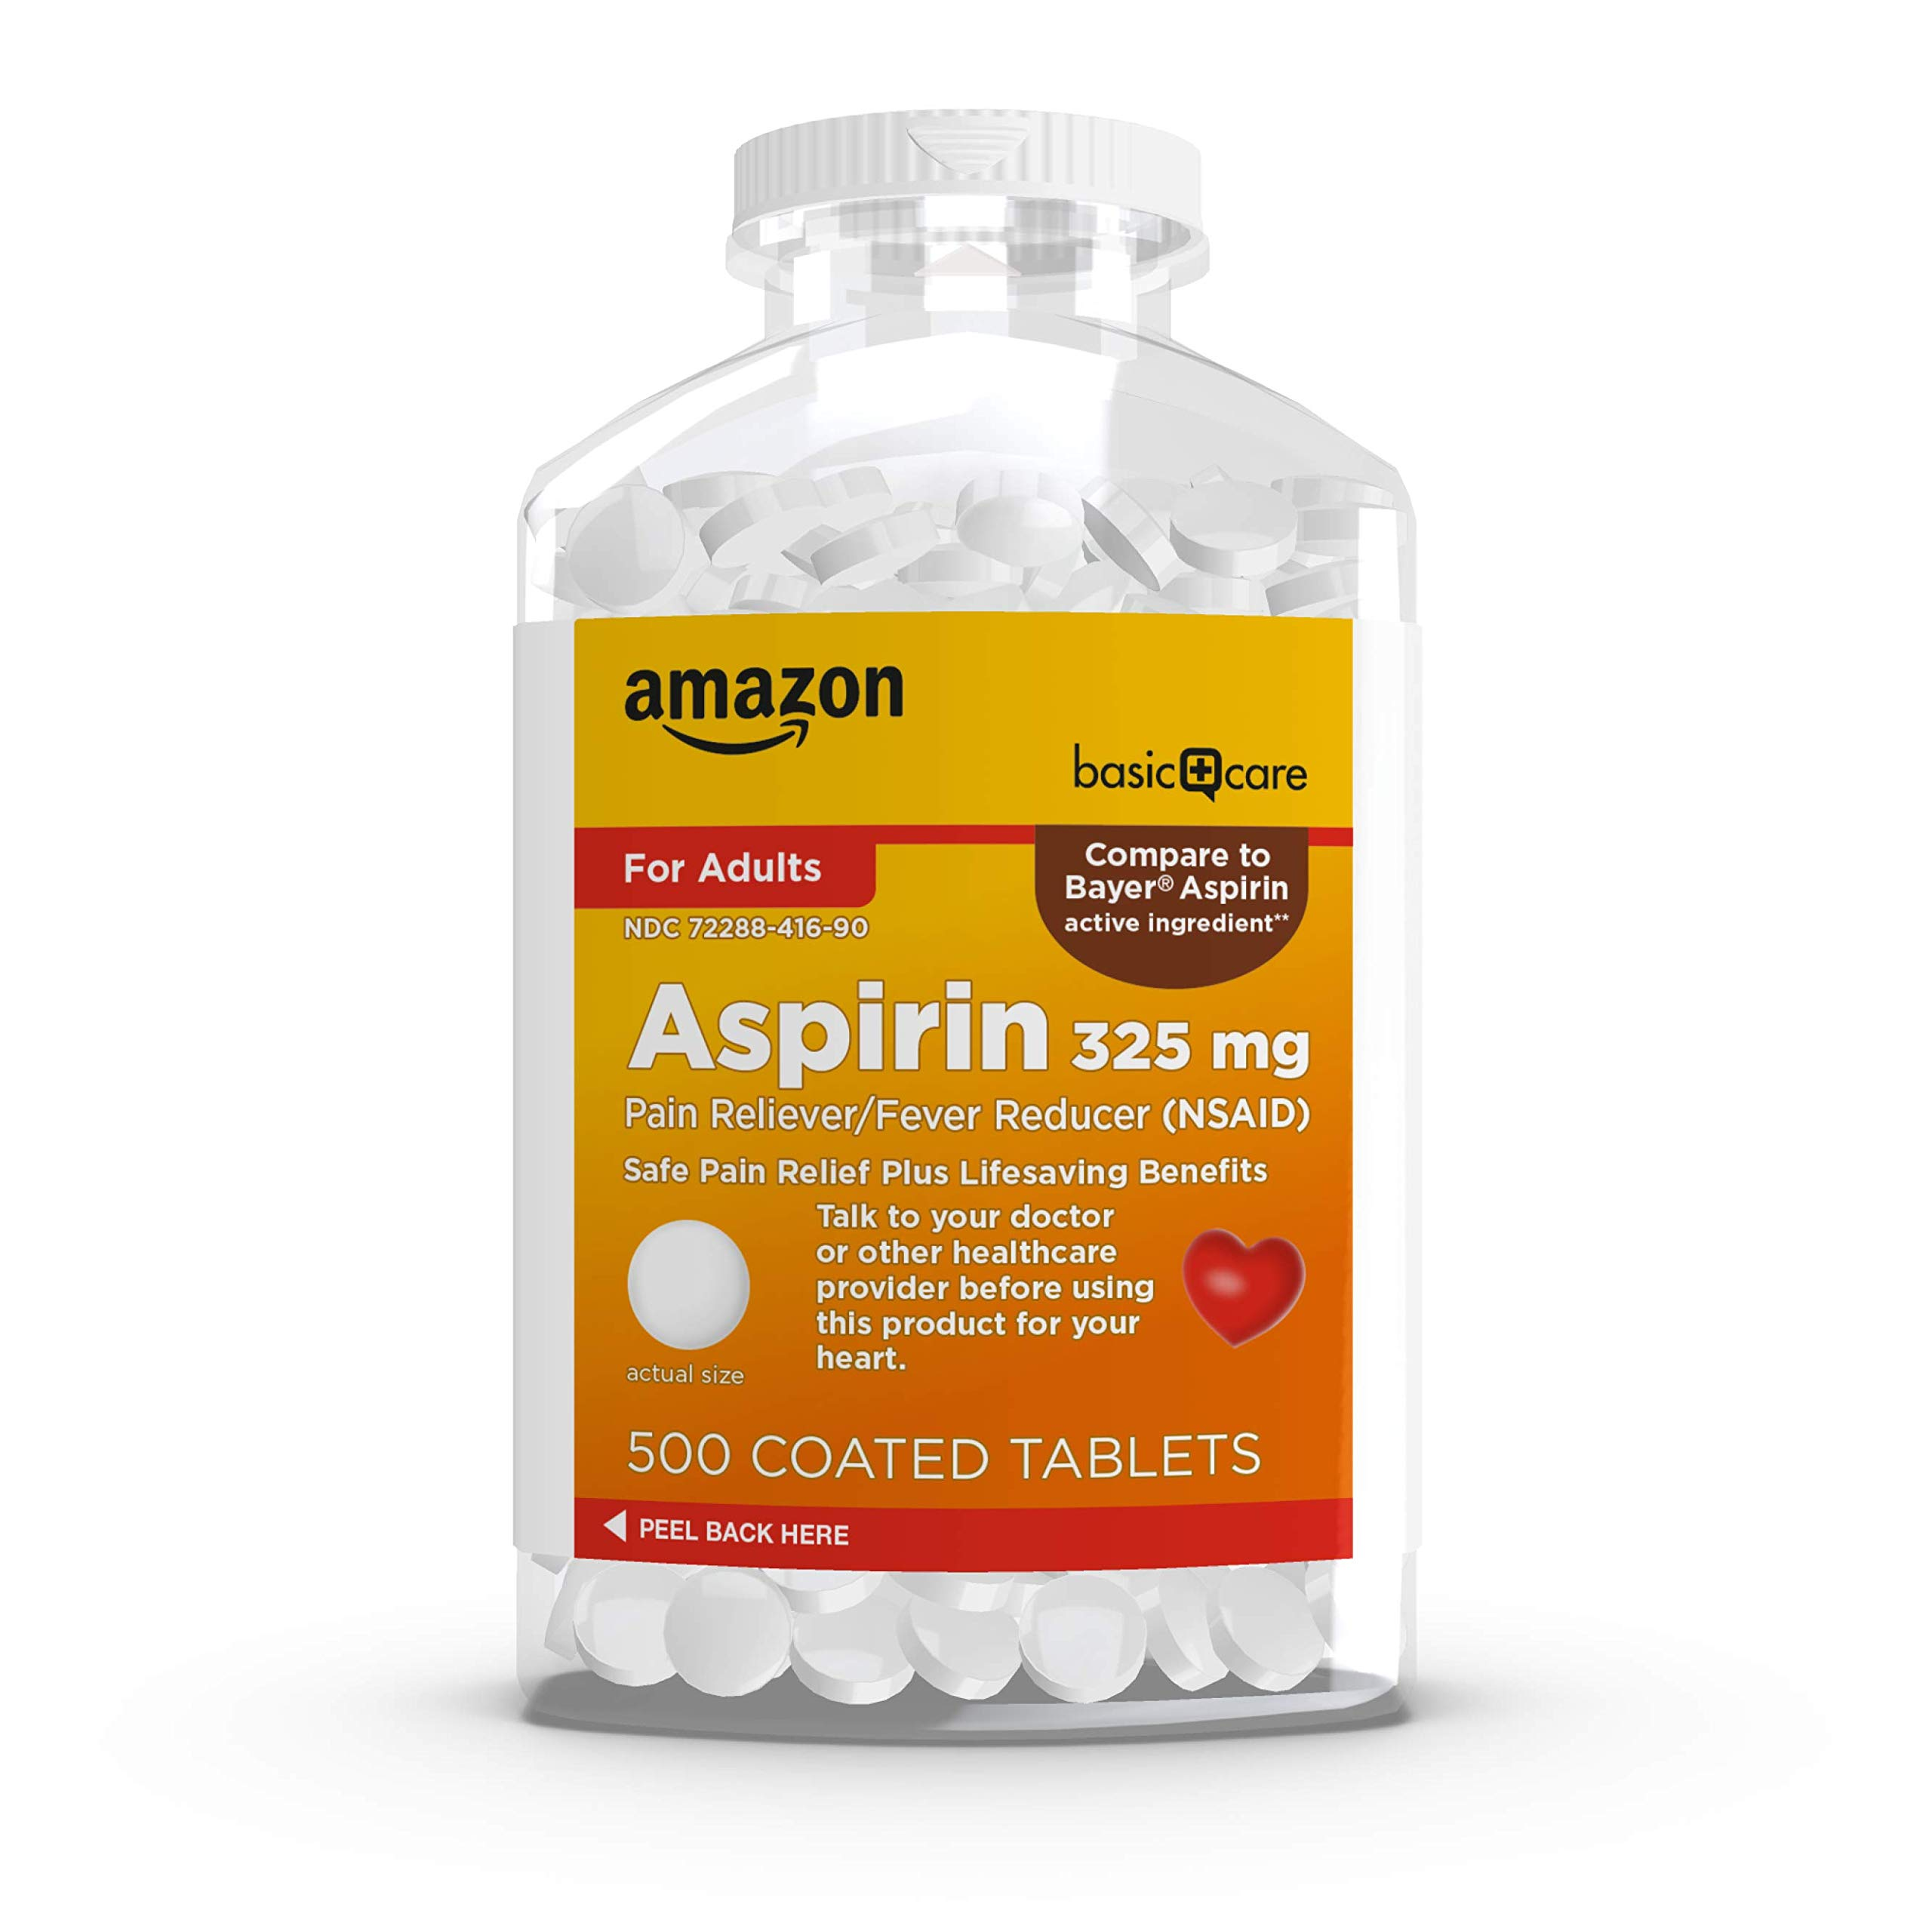 Amazon Basic Care Aspirin Pain Reliever and Fever Reducer (NSAID), 325 mg Coated Tablets, 500 Count